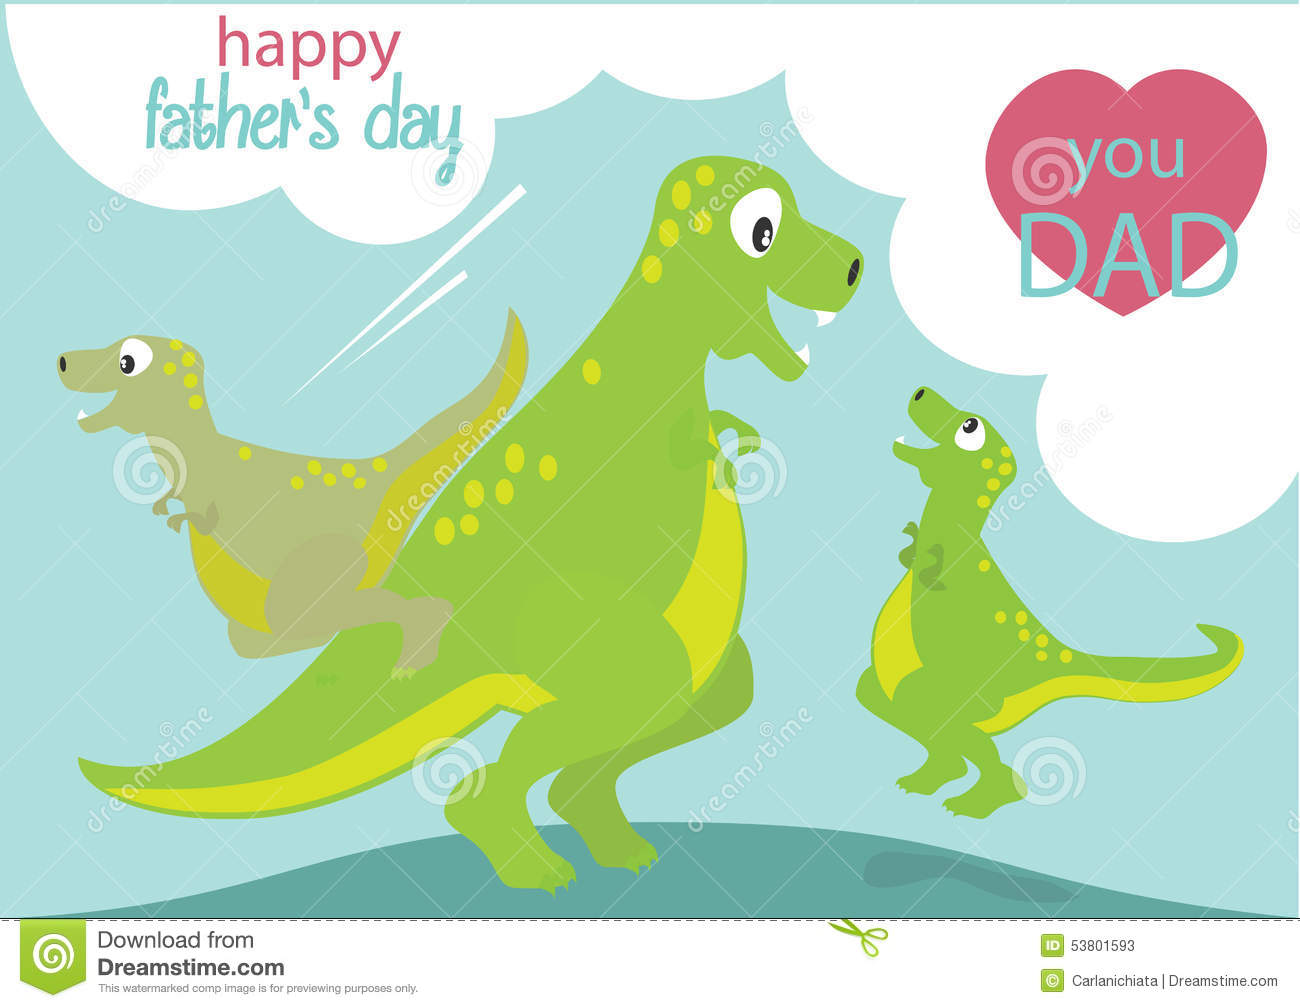 Dinosaurs playing with Dad. Happy father's day. Love you Dad text.